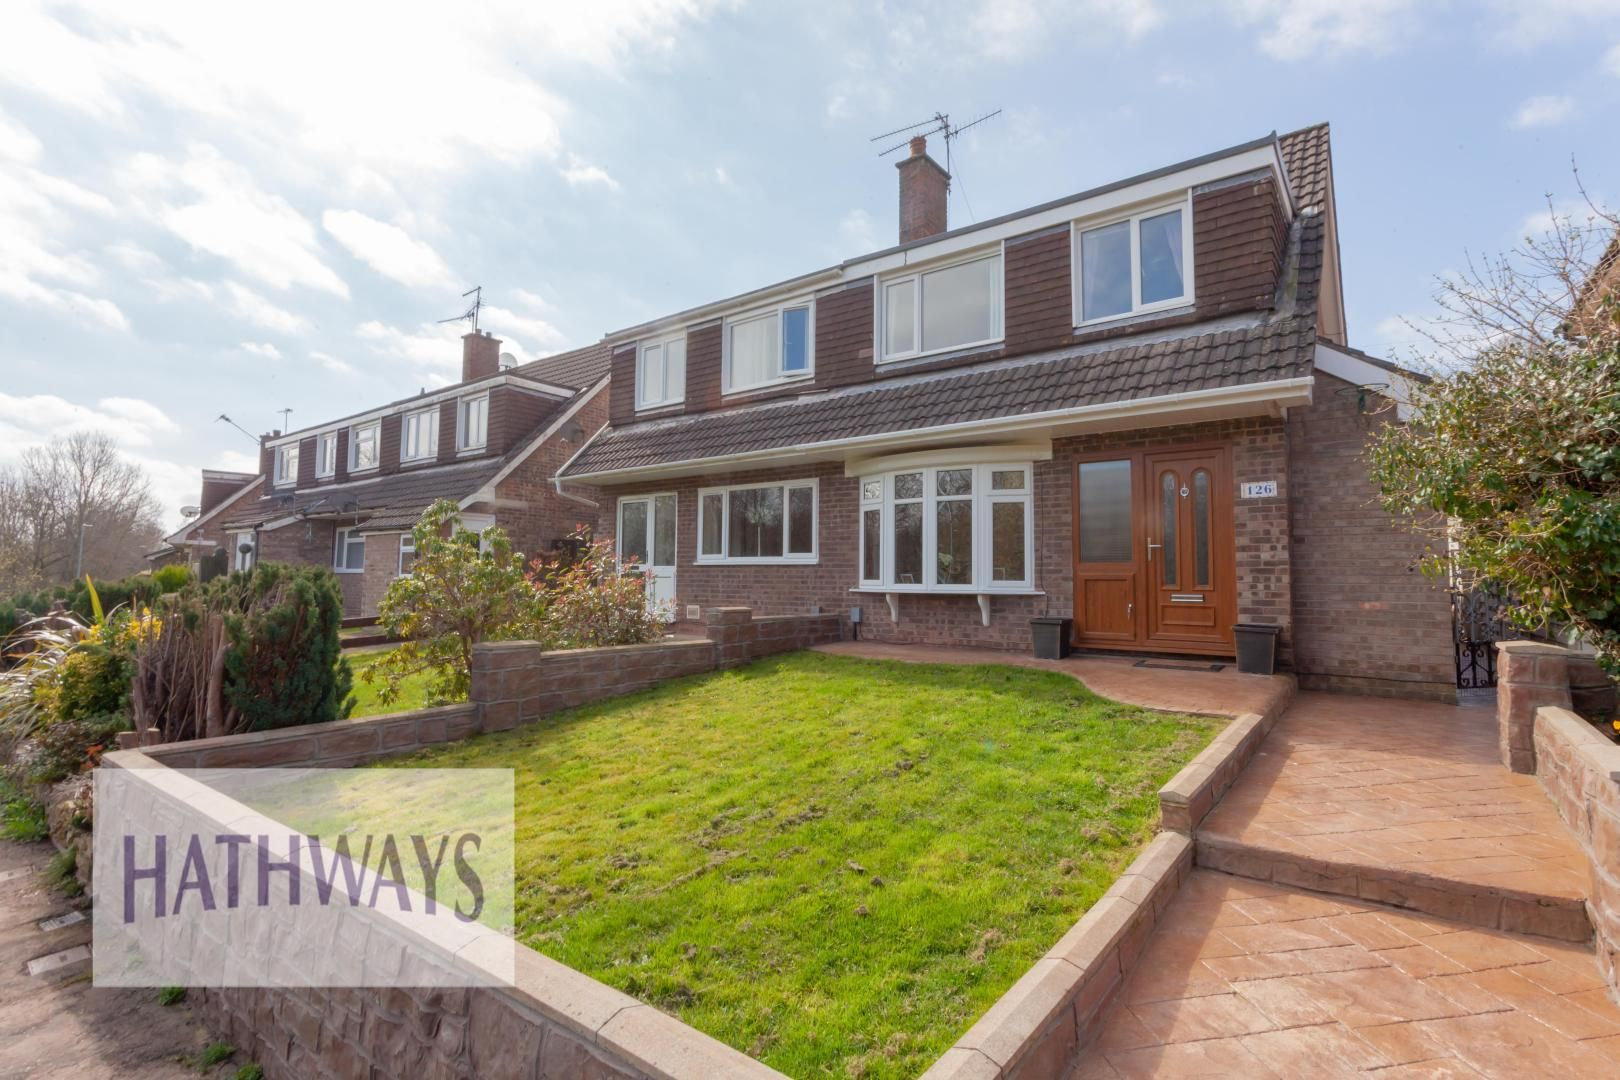 3 bed house for sale in Claremont, NP20